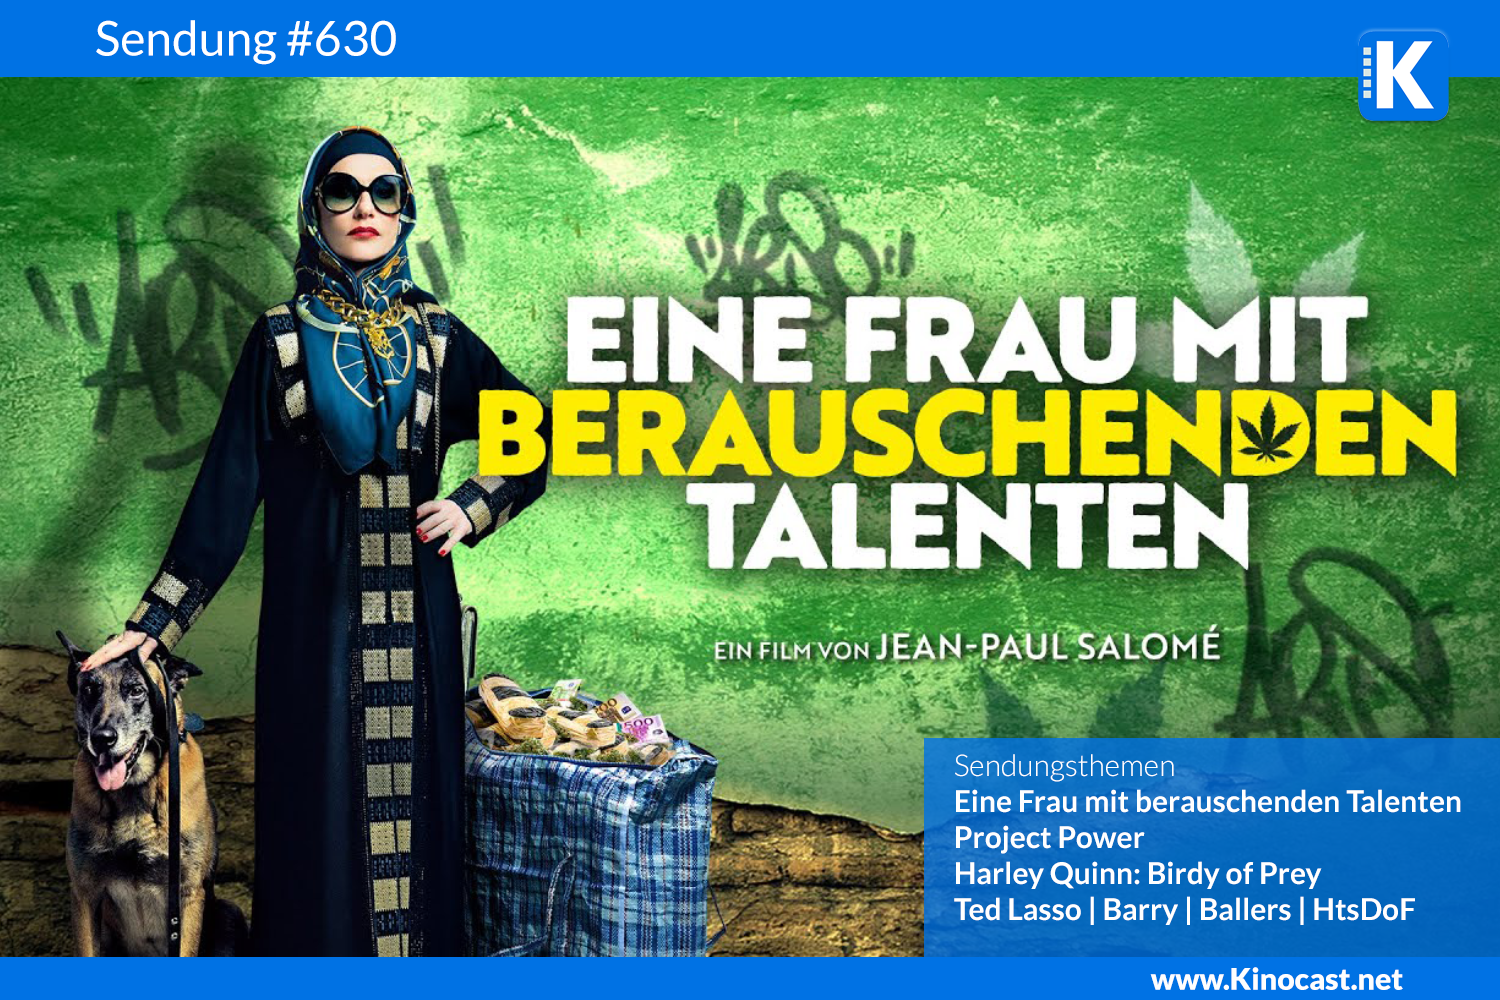 La Daronne Frau mit berauschenden Talenten Project Power Birds of Prey Download film german deutsch Podcast